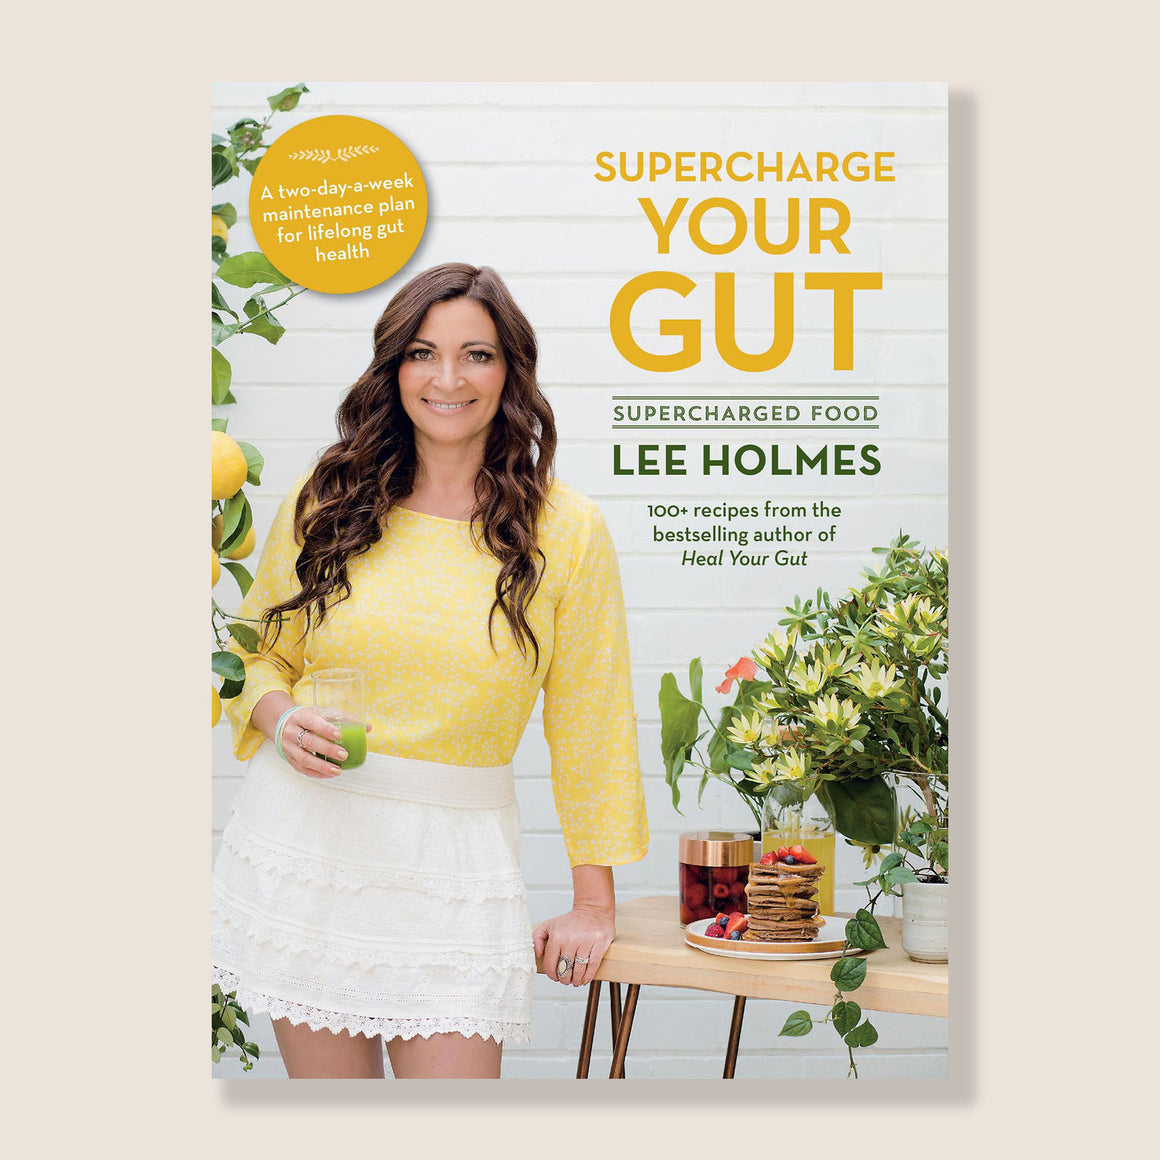 SUPERCHARGE YOUR GUT BOOK